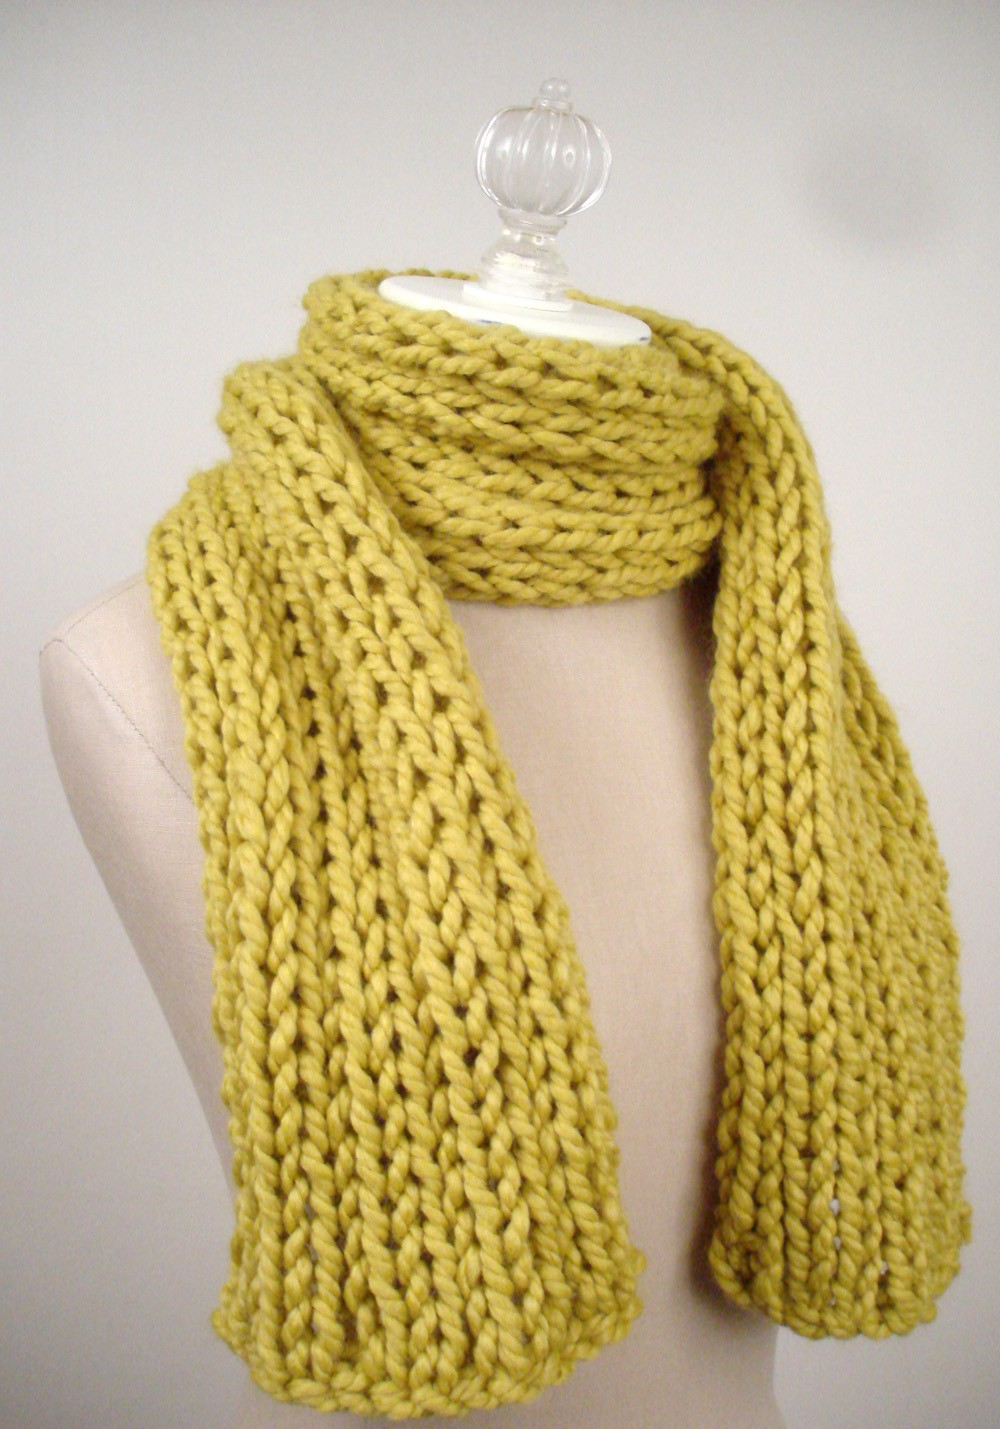 Knitting Patterns For Scarfs : EASY KNIT SCARF PATTERNS   Free Patterns